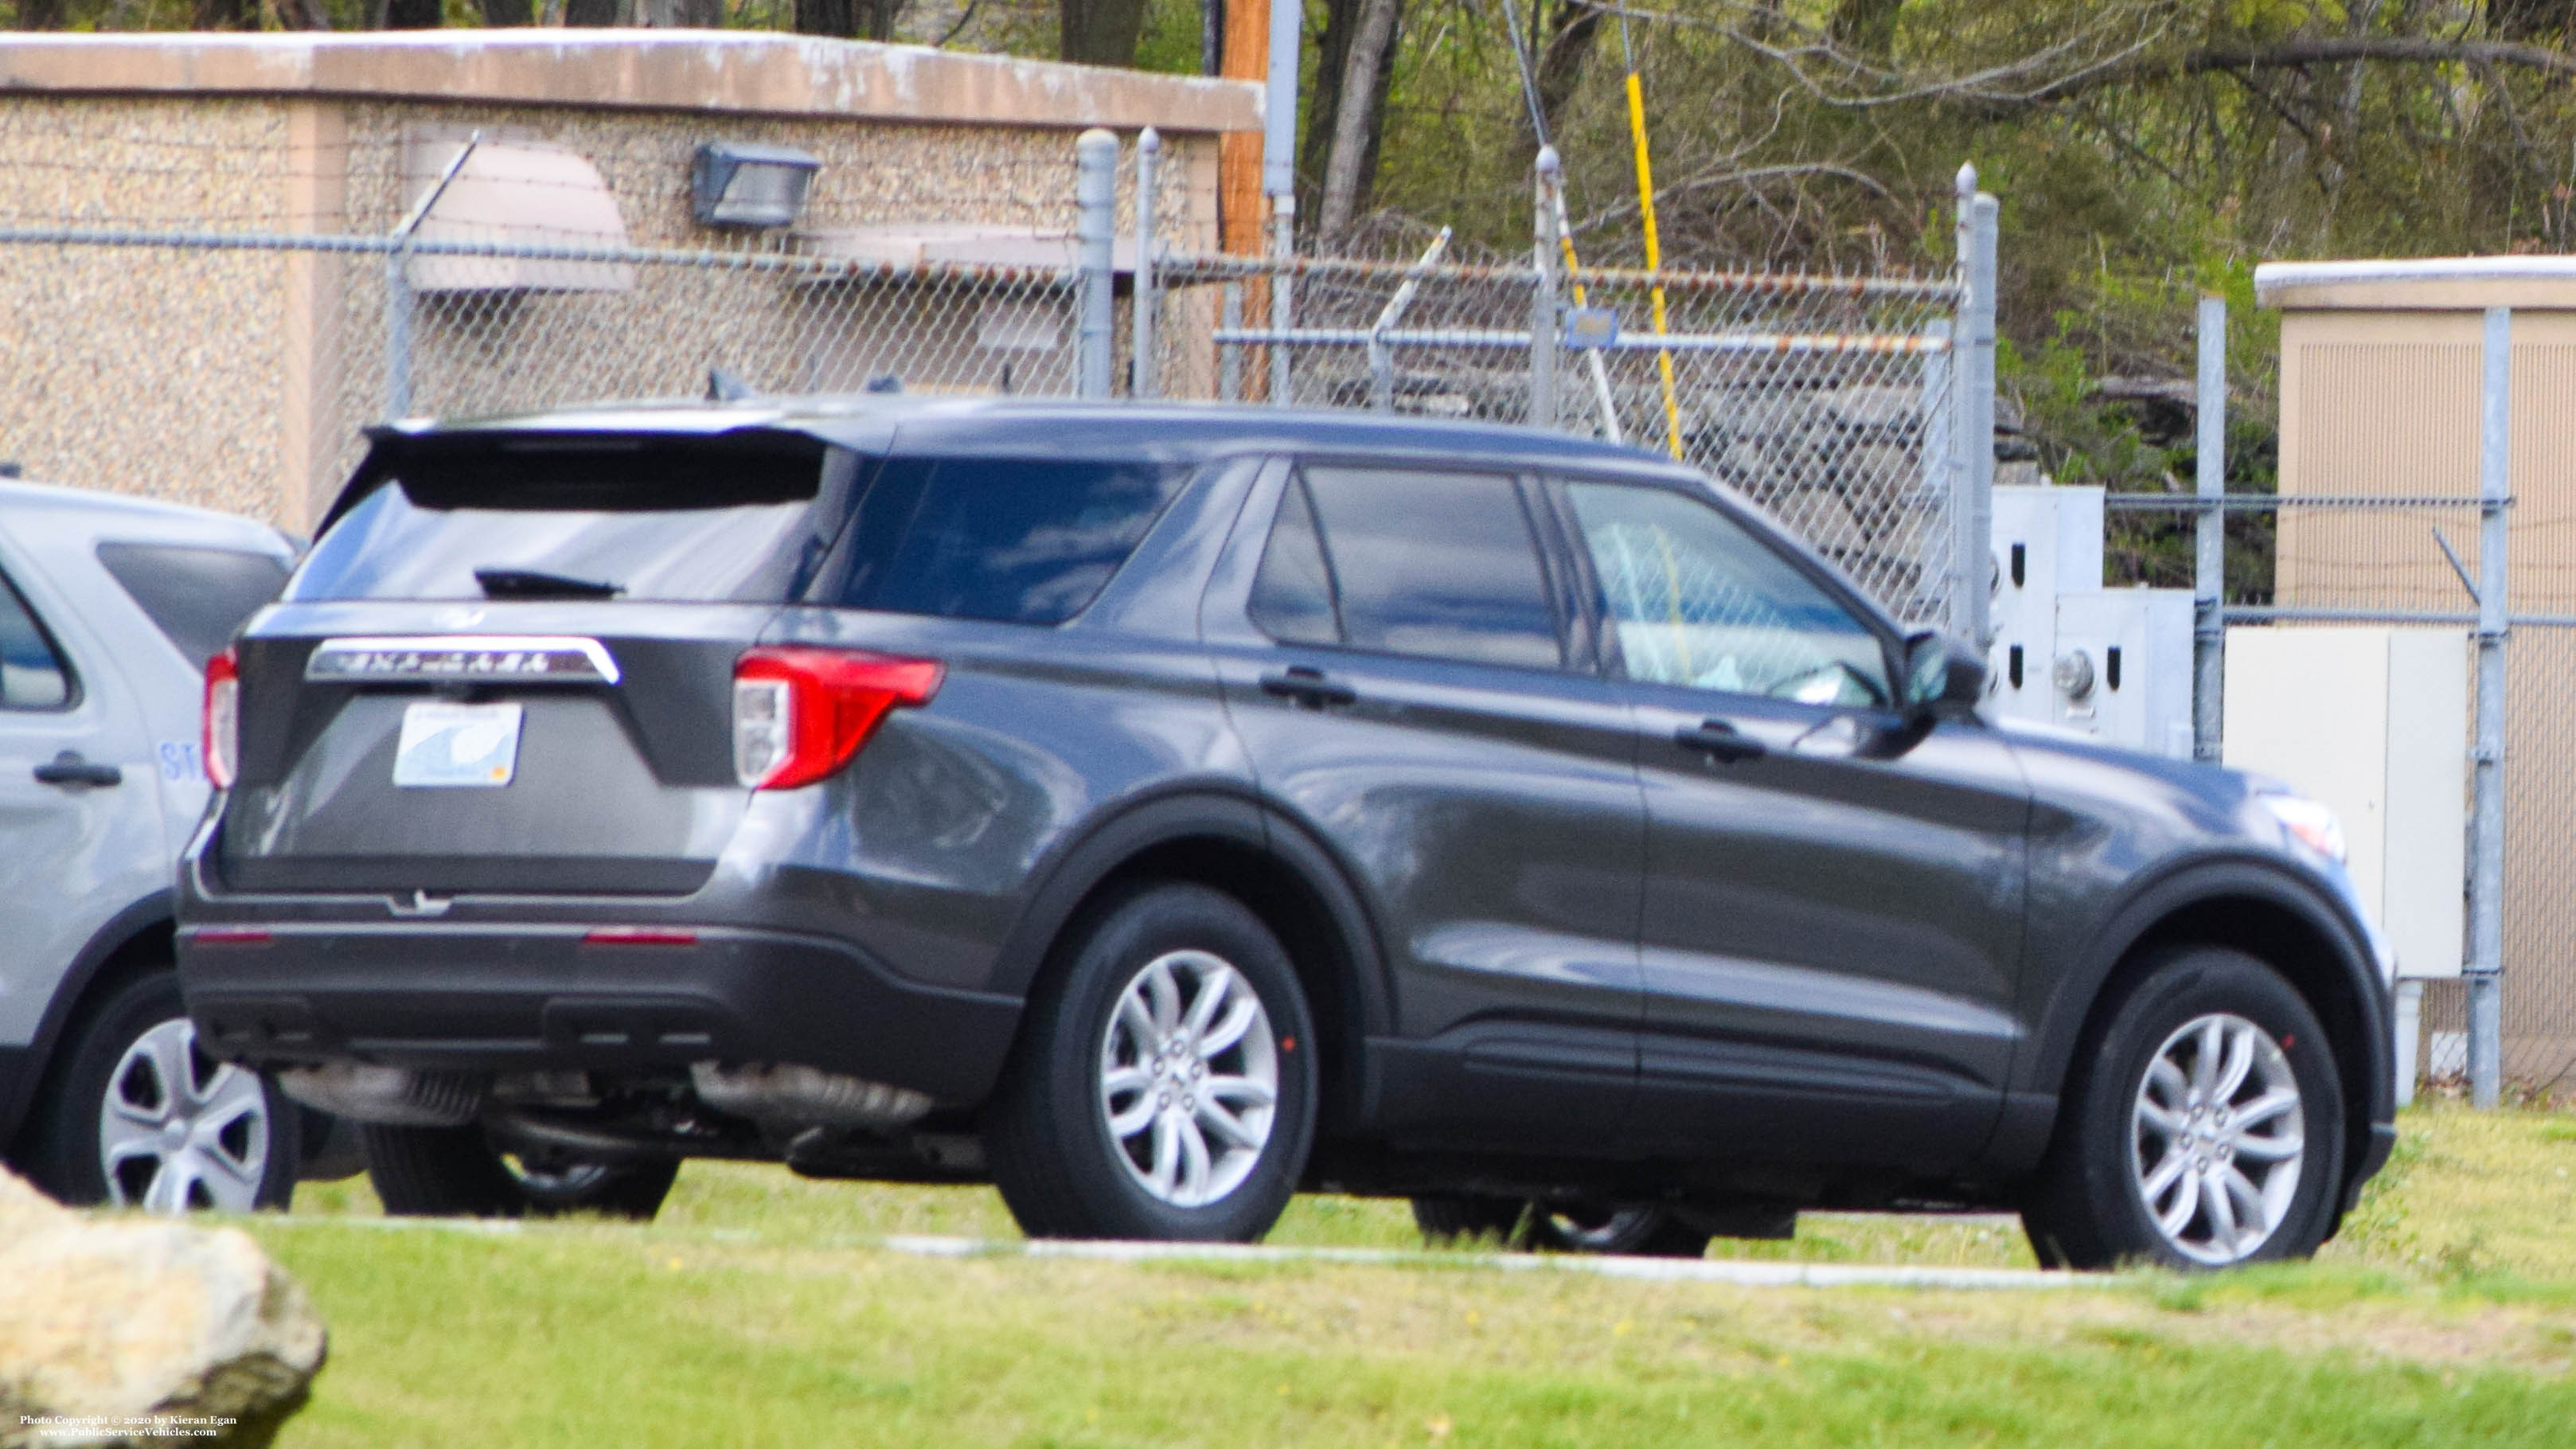 A photo  of Rhode Island State Police             Unmarked Unit, a 2020 Ford Explorer             taken by Kieran Egan